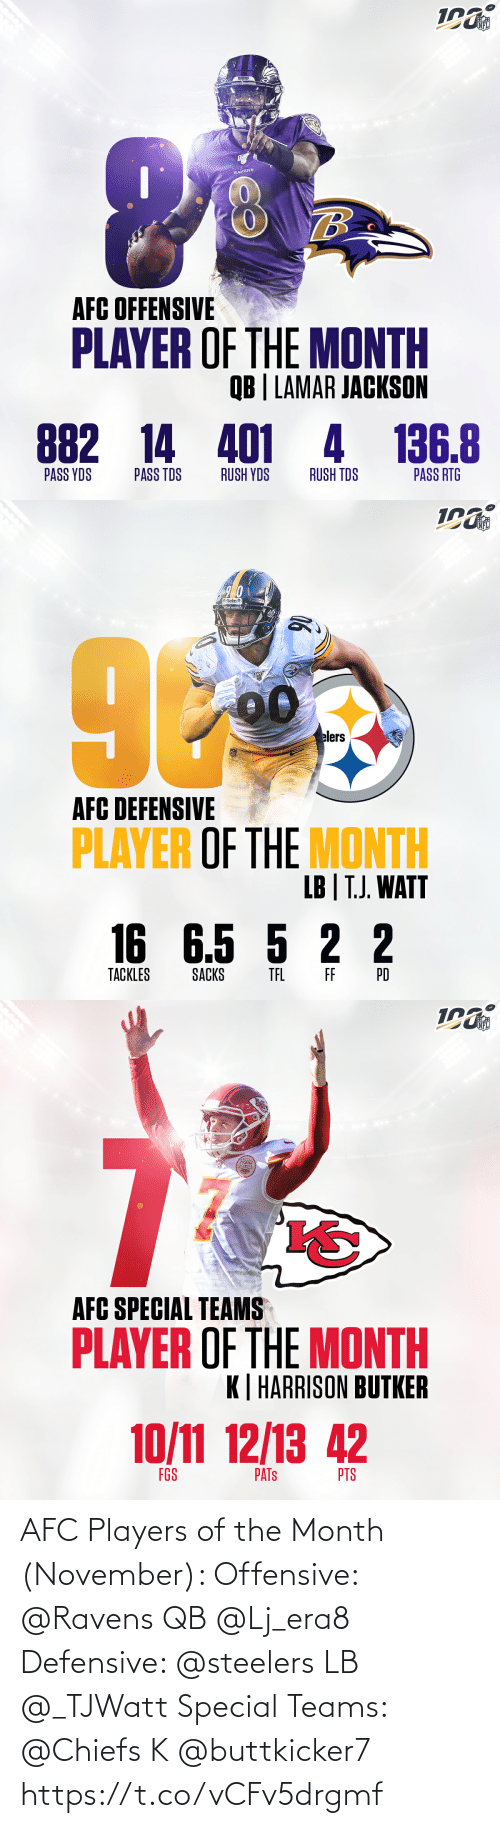 november: NFL  RAVENS  AFC OFFENSIVE  PLAYER OF THE MONTH  QB | LAMAR JACKSON  882 14 401 4 136.8  PASS YDS  PASS TDS  RUSH YDS  RUSH TDS  PASS RTG   NFL  elers  AFC DEFENSIVE  PLAYER OF THE MONTH  LB | T.J. WATT  16 6.5 5 2 2  TACKLES  SACKS  TEL  FF  PD   NFL  AFC SPECIAL TEAMS  PLAYER OF THE MONTH  K| HARRISON BUTKER  10/11 12/13 42  FGS  PTS  PATS AFC Players of the Month (November):   Offensive: @Ravens QB @Lj_era8  Defensive: @steelers LB @_TJWatt  Special Teams: @Chiefs K @buttkicker7 https://t.co/vCFv5drgmf